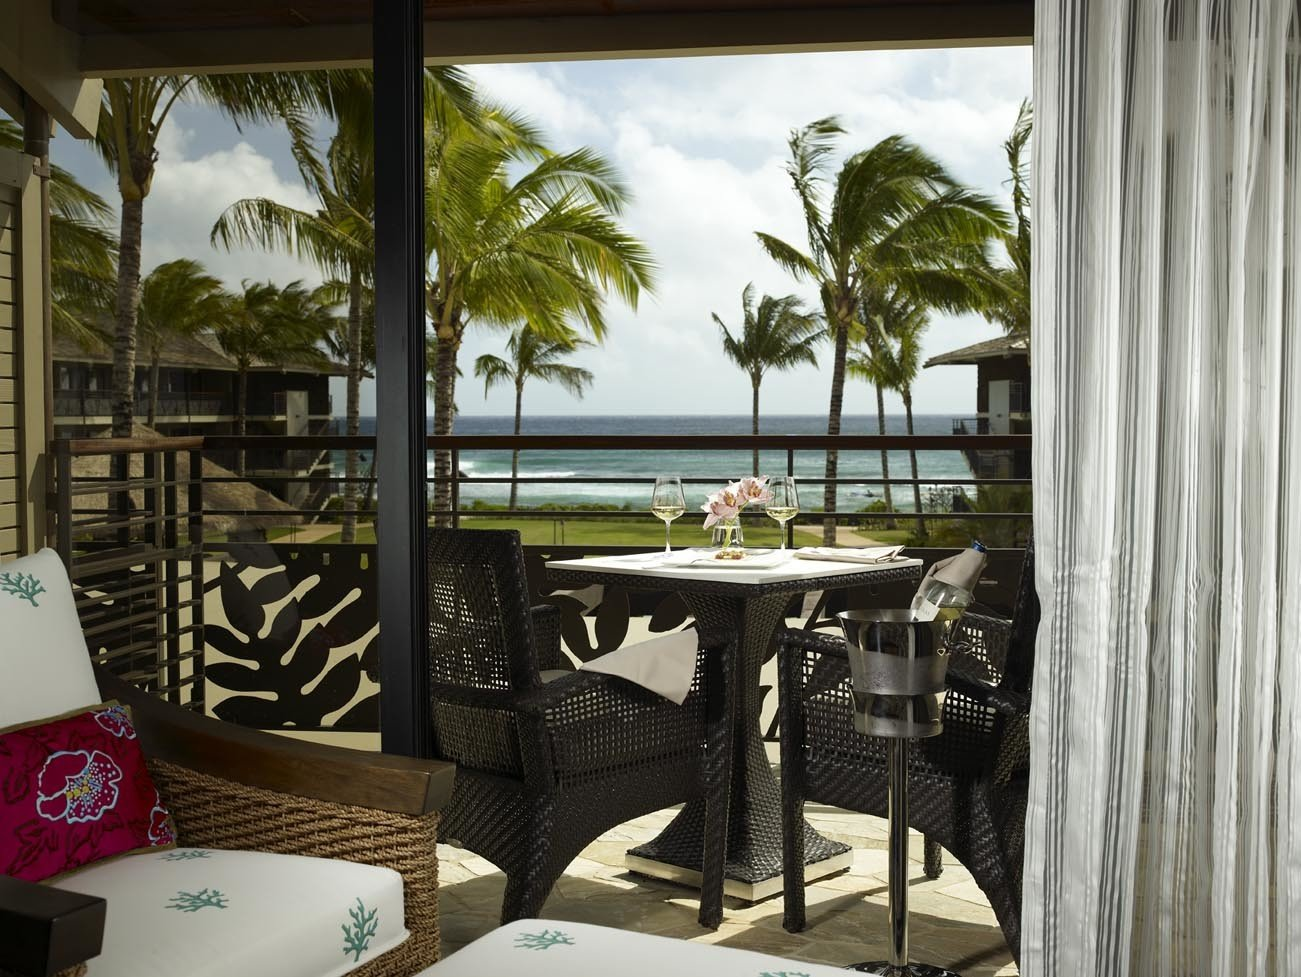 Hotels Romance chair property room house home estate condominium restaurant vacation Resort interior design porch cottage real estate Villa Design apartment window covering furniture area dining table